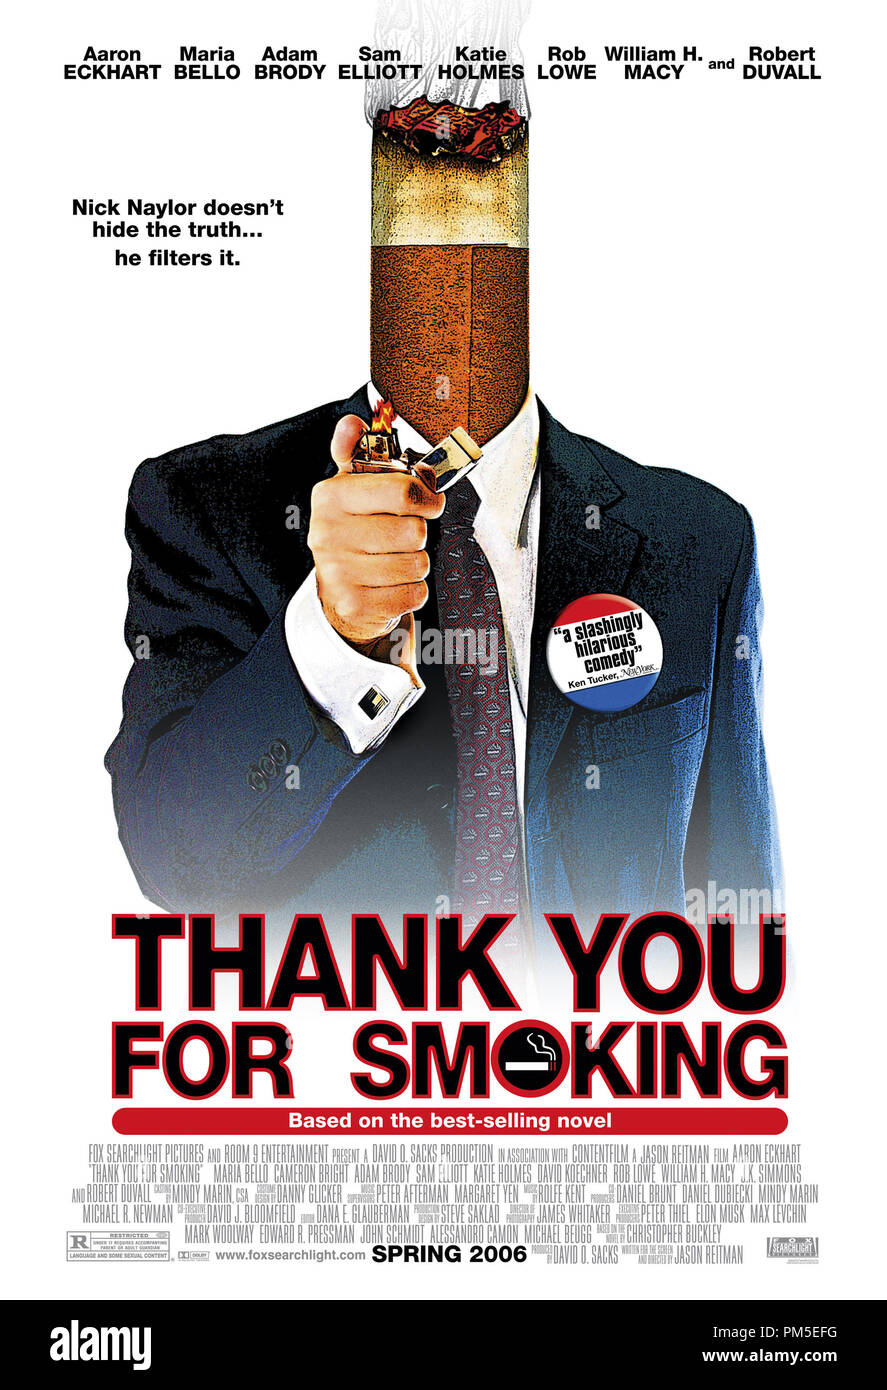 Poster Art from 'Thank You for Smoking' Poster © 2005 Fox Searchlight Pictures  File Reference # 30736967THA  For Editorial Use Only -  All Rights Reserved - Stock Image